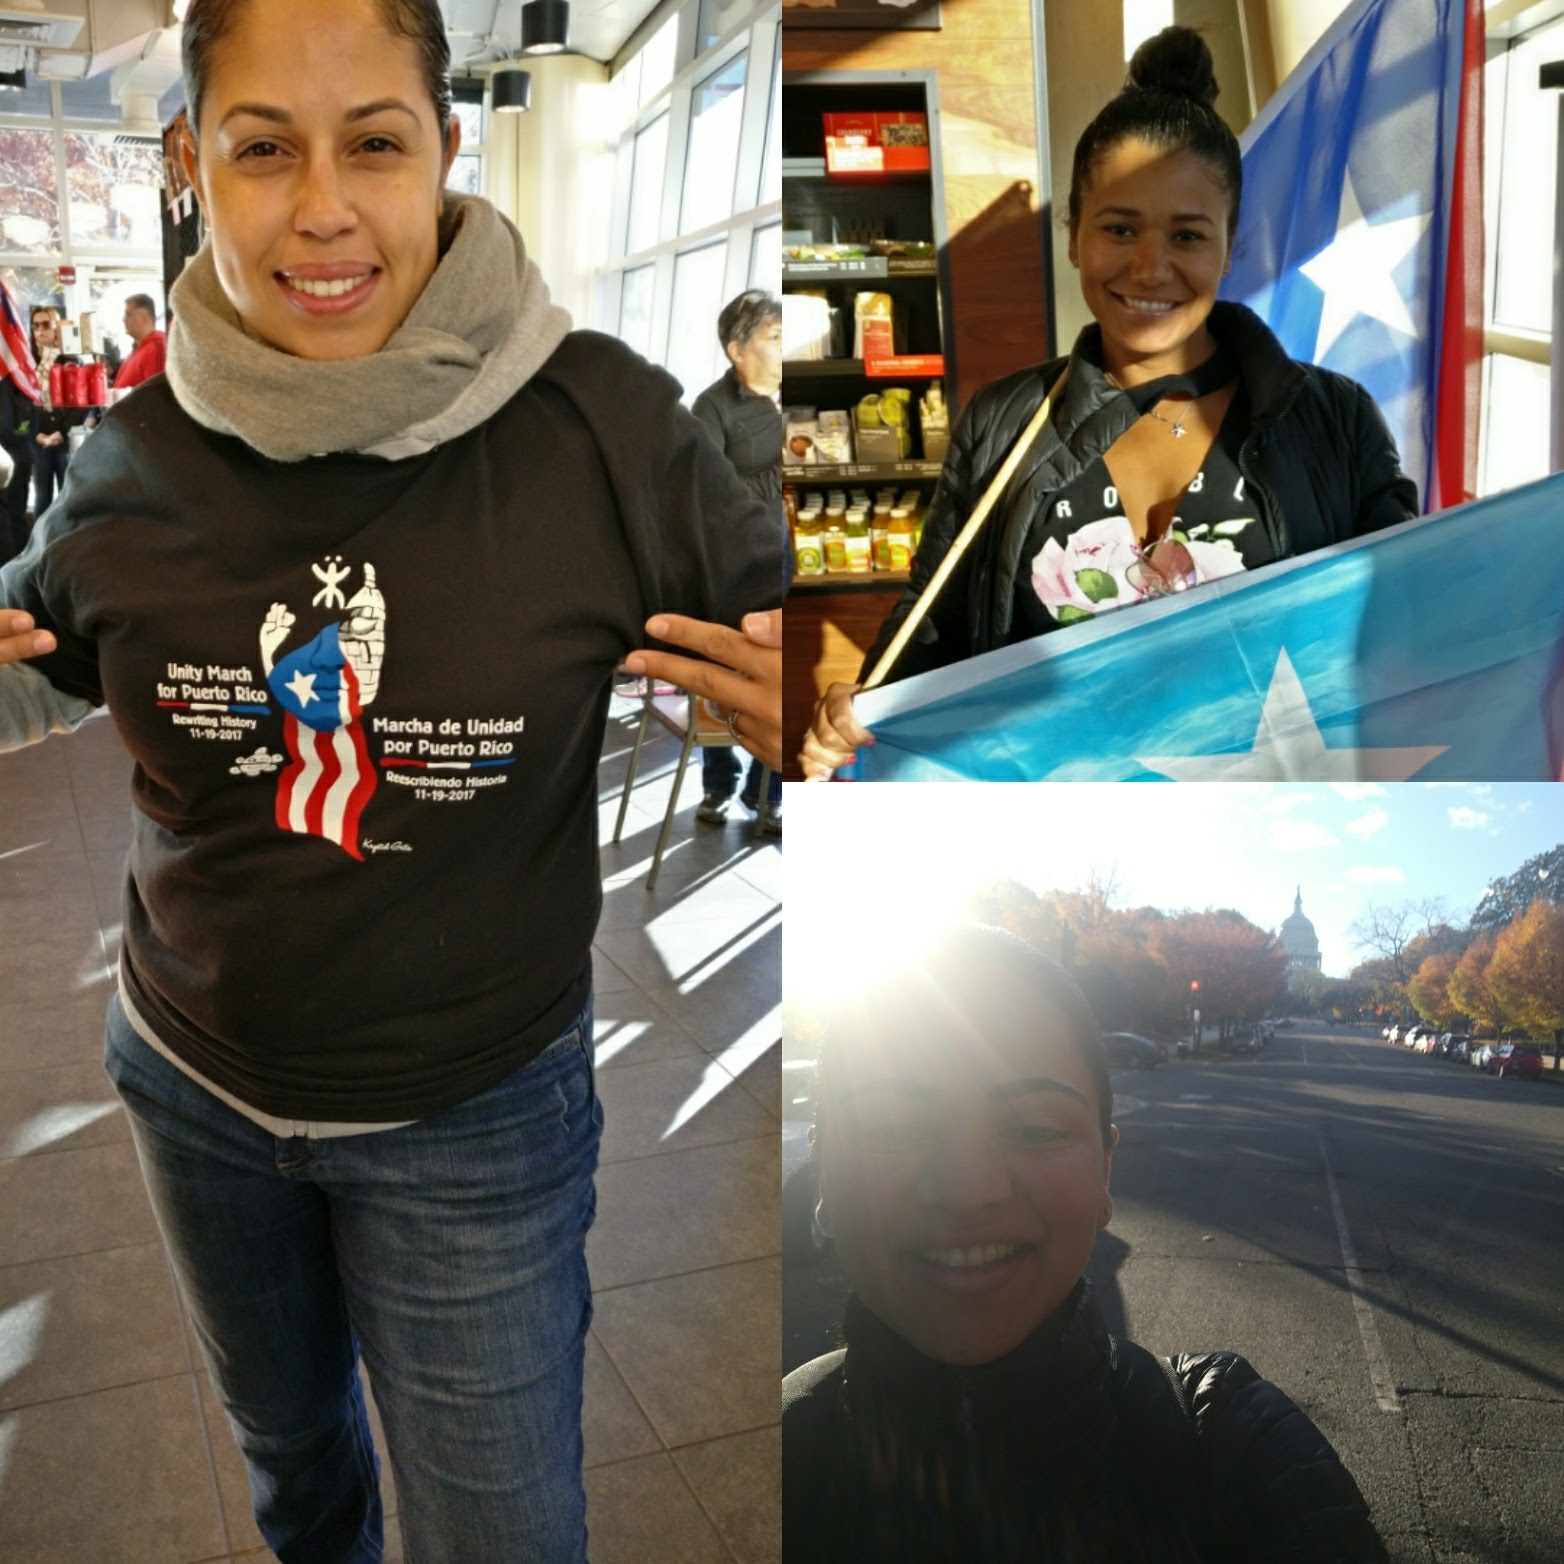 March In Support of Puerto Rico Aid